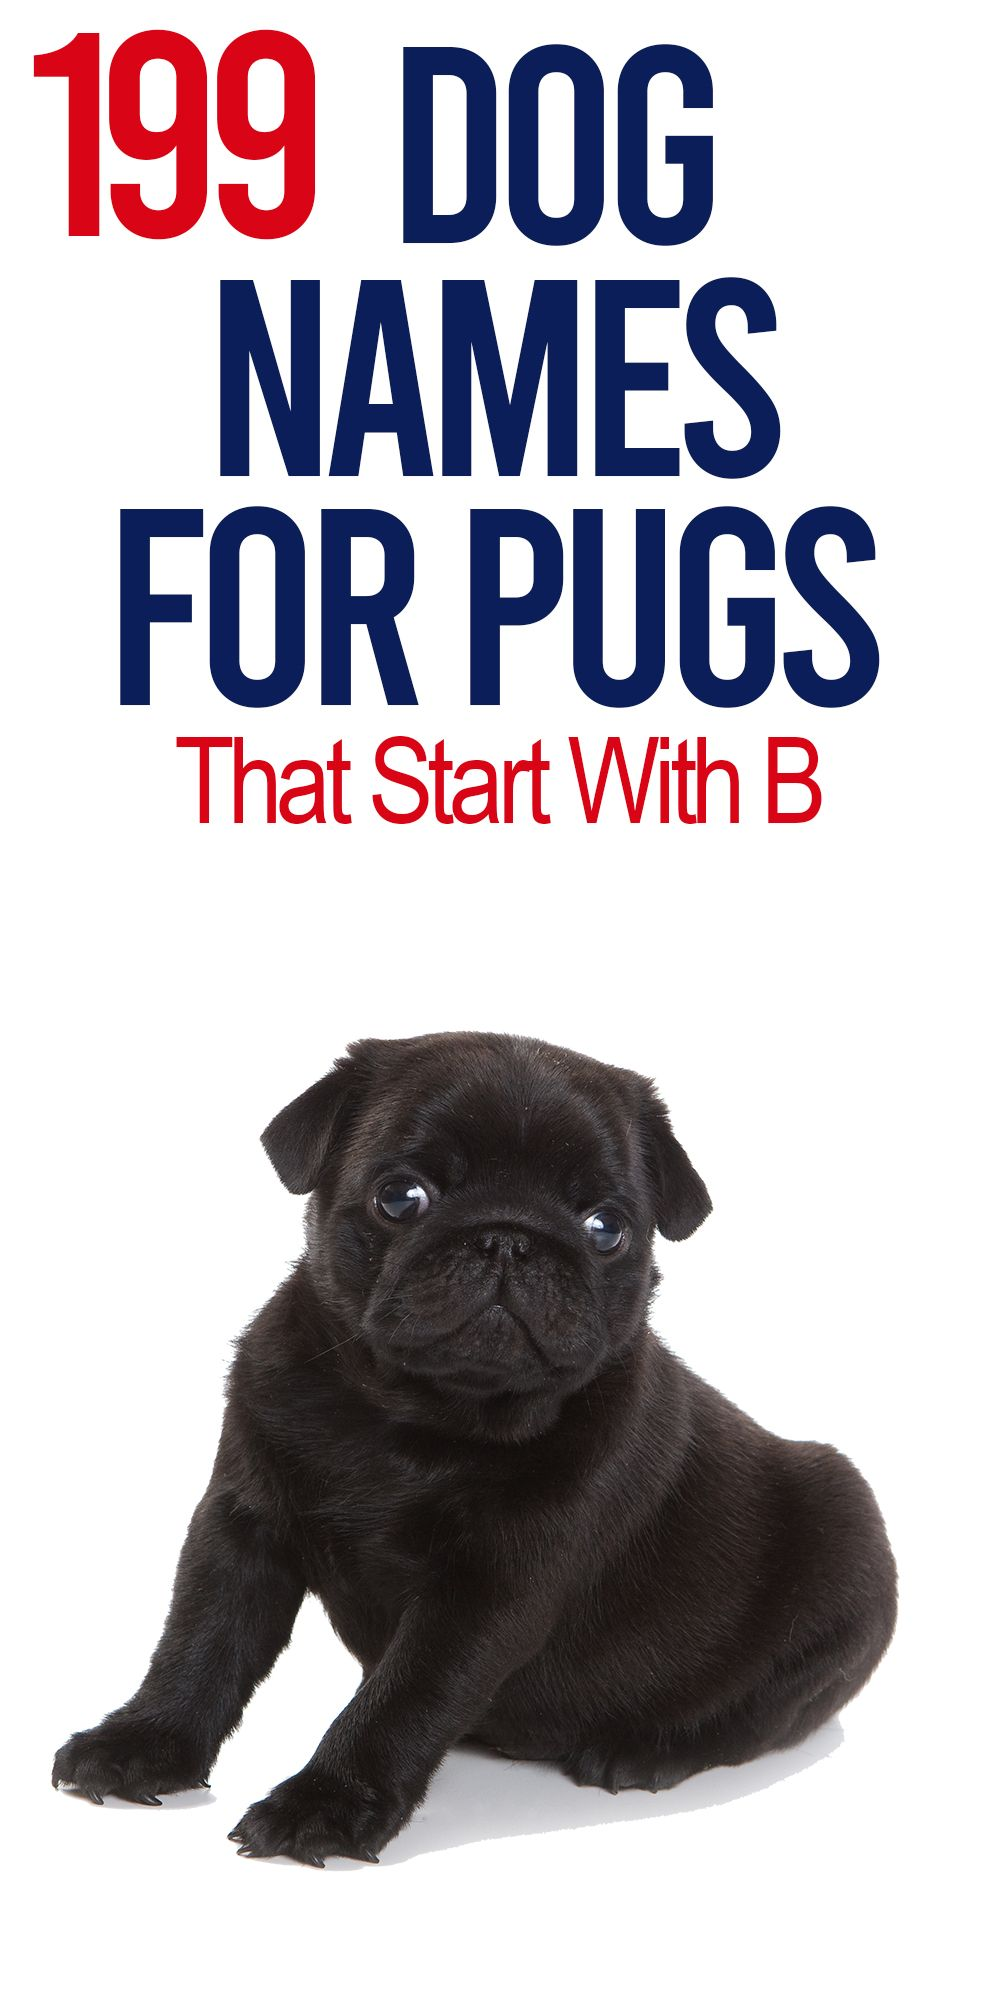 Huge Database Of Pug Names That Start With B To Help You Name Your